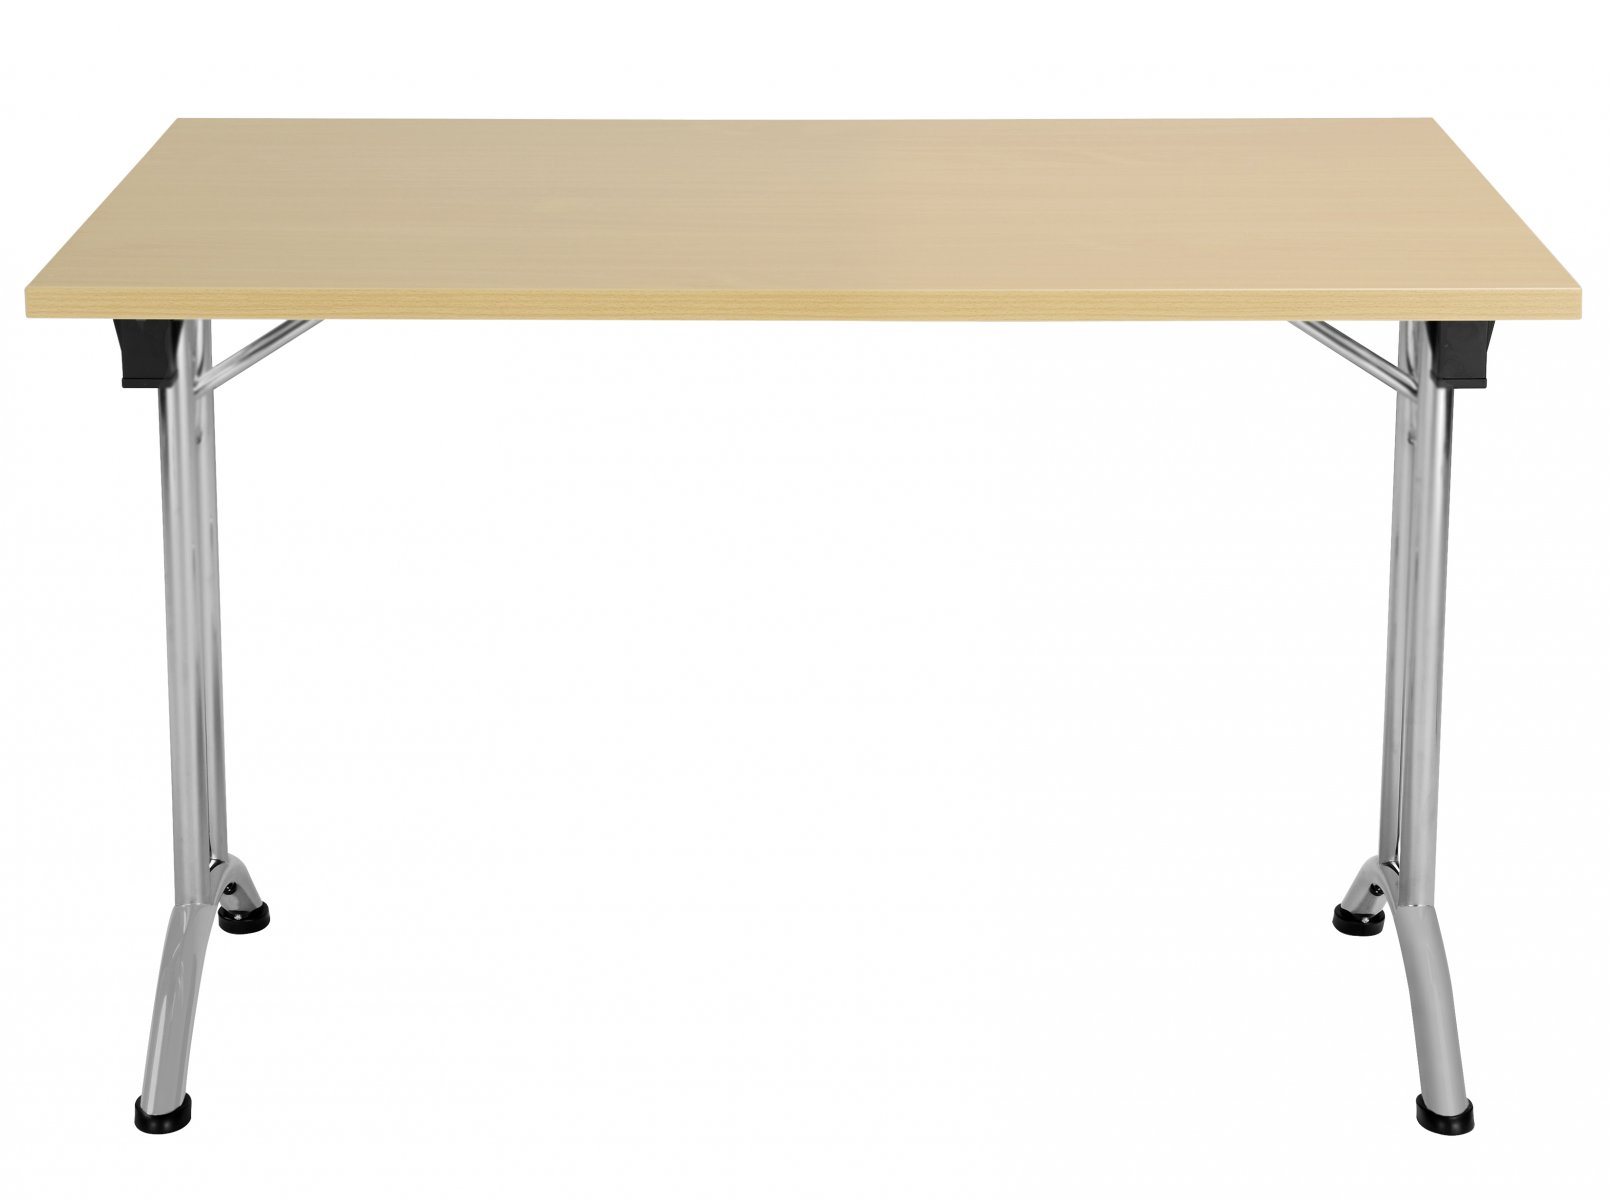 Union Rectangular 120 x 70 Folding Meeting Table - Nova Oak with Silver Frame